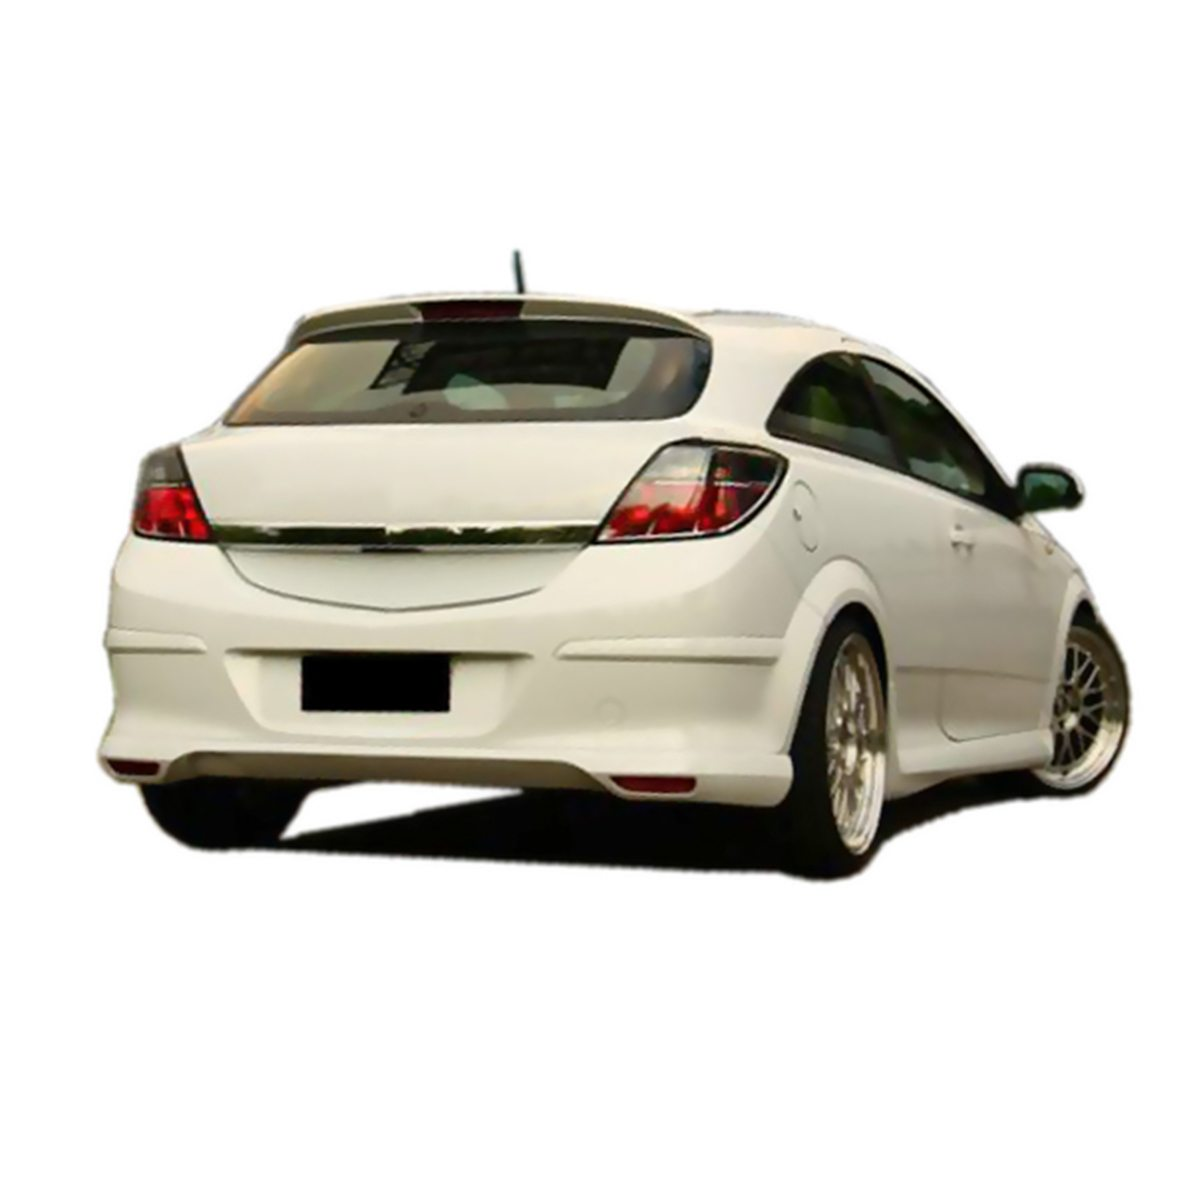 Opel-Astra-H-OPC-Spoiler-Tras-SPU0803